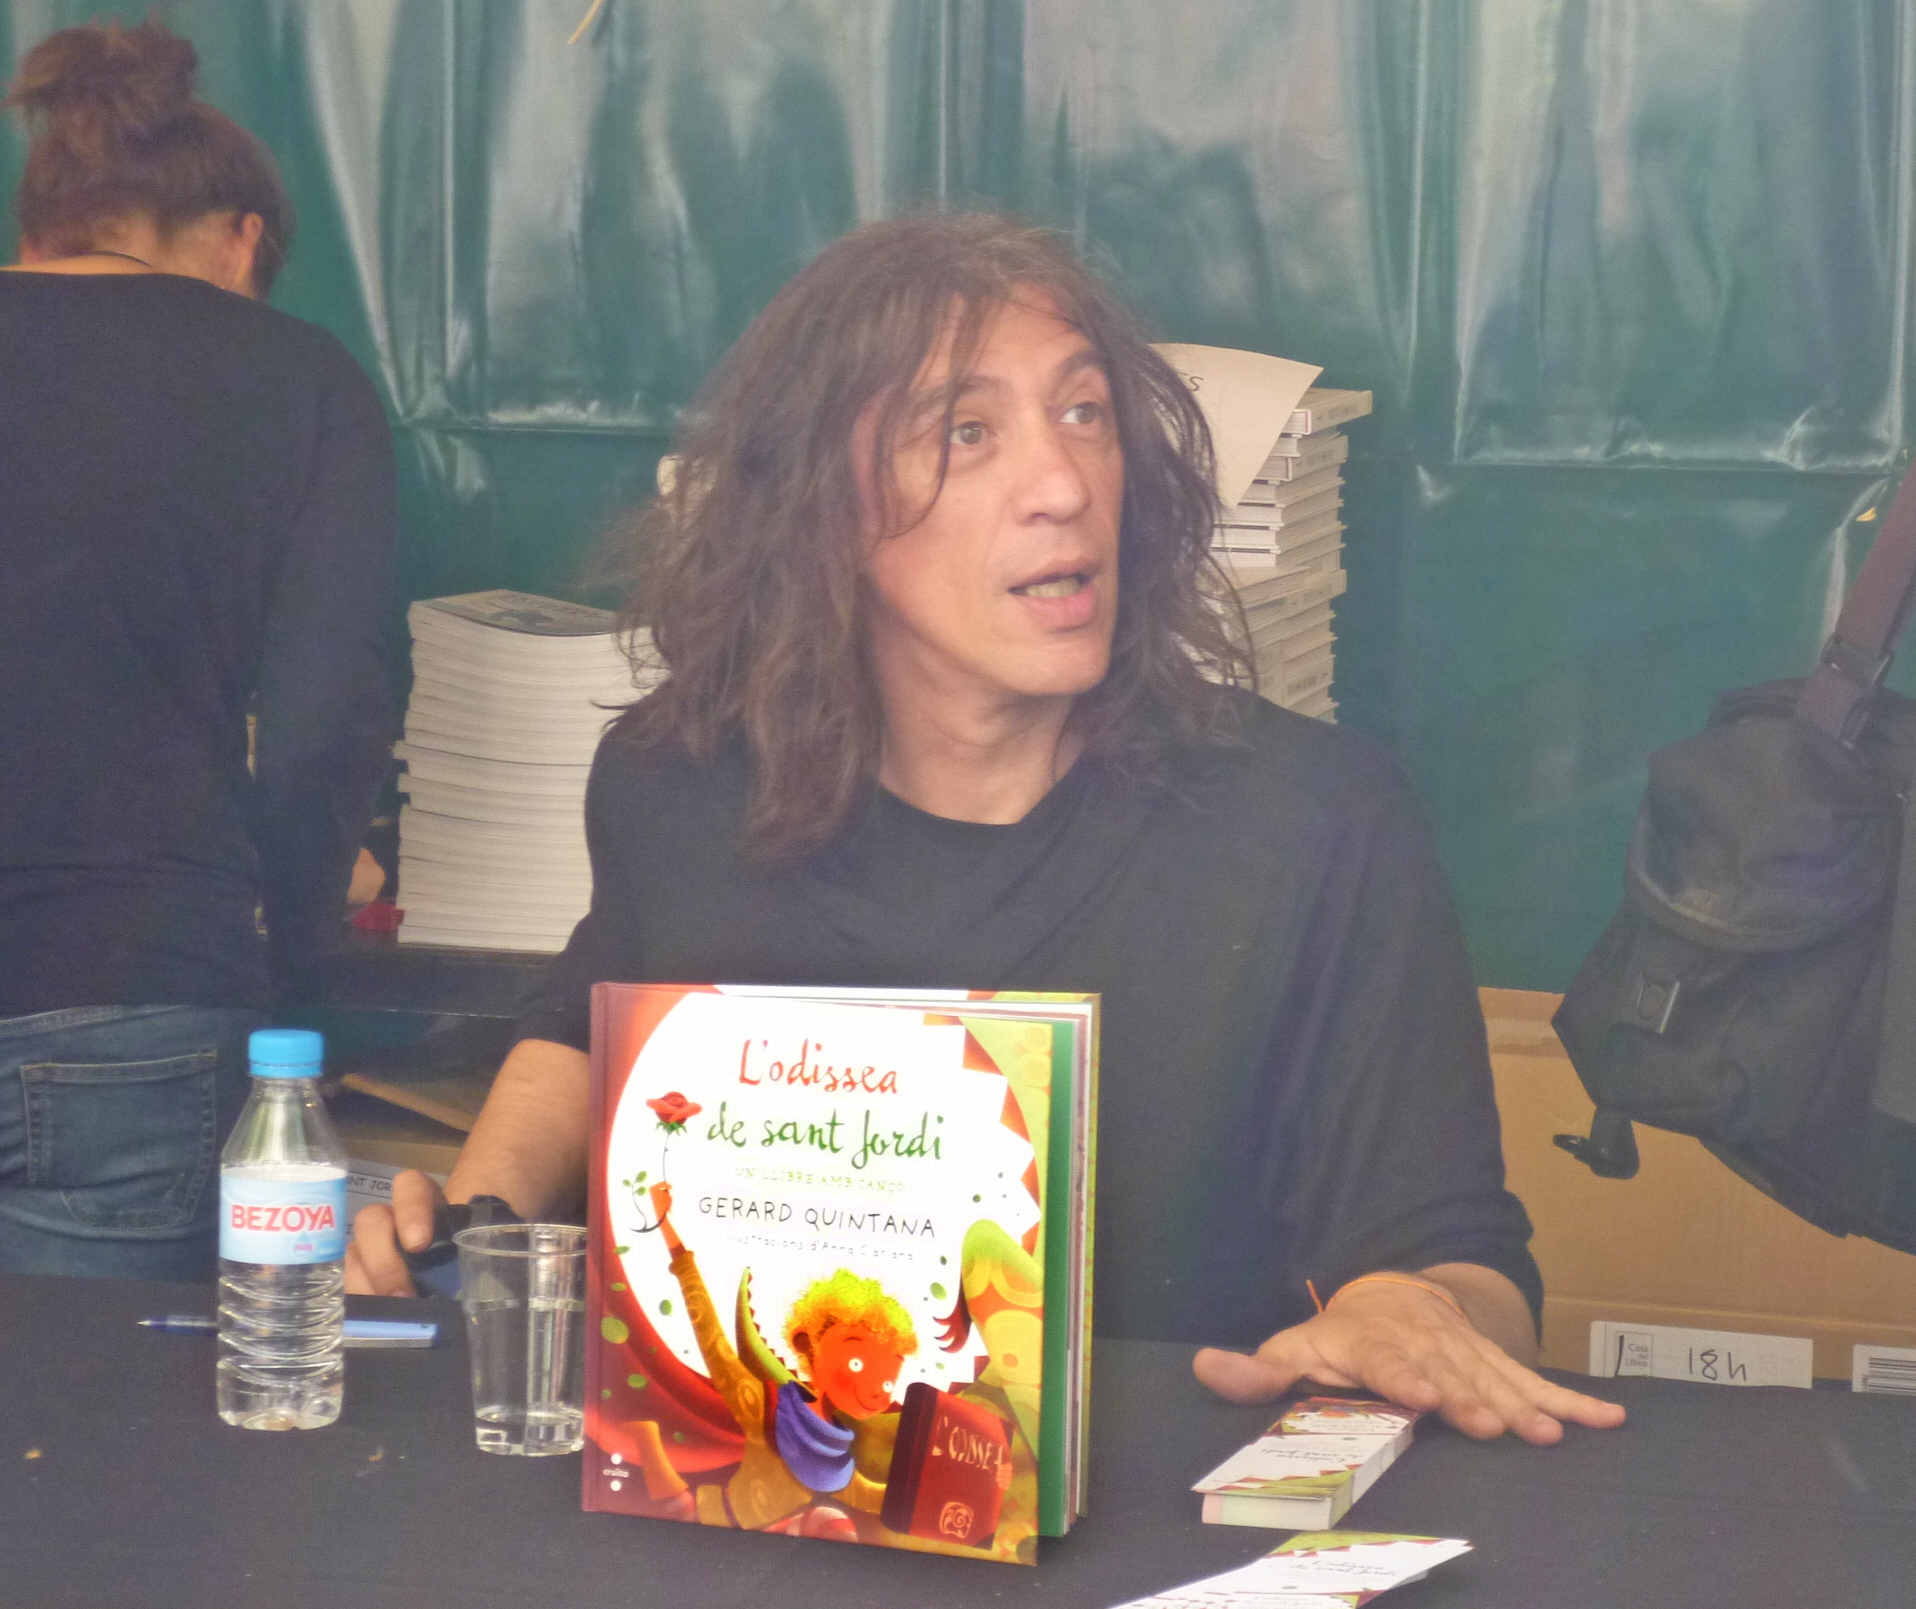 Gerard Quintana signing copies of his new book. Barcelona, April 23, 2015Quintana has a distinctive writing style; fluent, direct and full of vivid visual imagery. Although he had regularly published articles in newspapers, it was not until April 2012 that he published his first full-length book, Més enllà de les estrelles ('Beyond the stars'), a lively personal account of the 2011 tour.  It includes many autobiographical insights, and paints a picture of the complex organisation and hard work behind a rock tour.  The book is illustrated with photographs by David Julià.